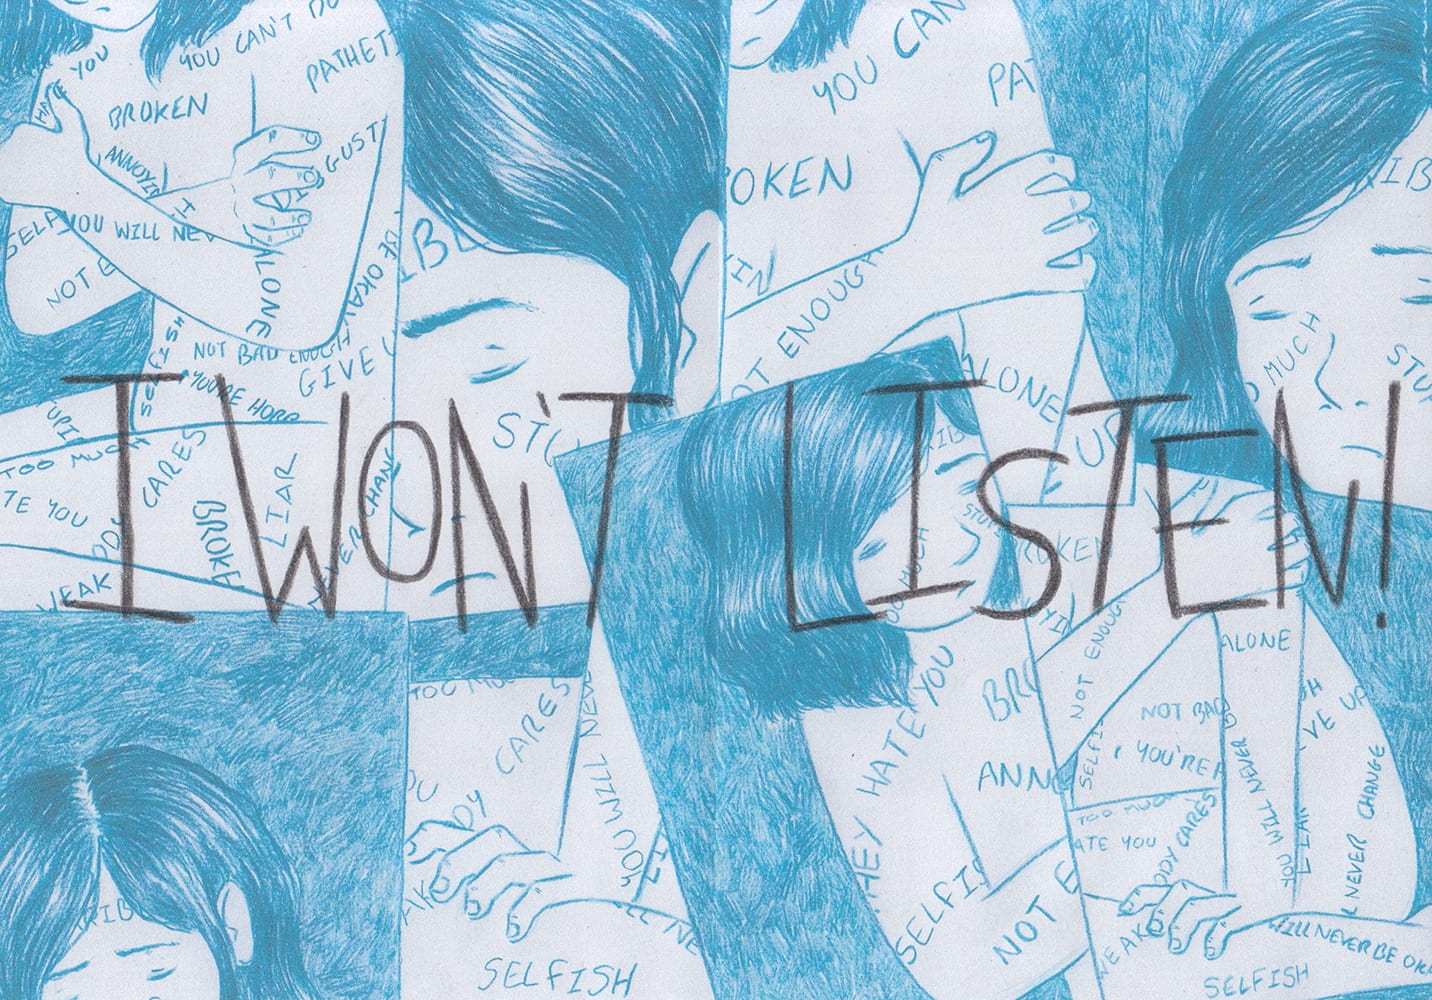 Illustration created to be a spread in a zine about protesting against the negative voices in your head.